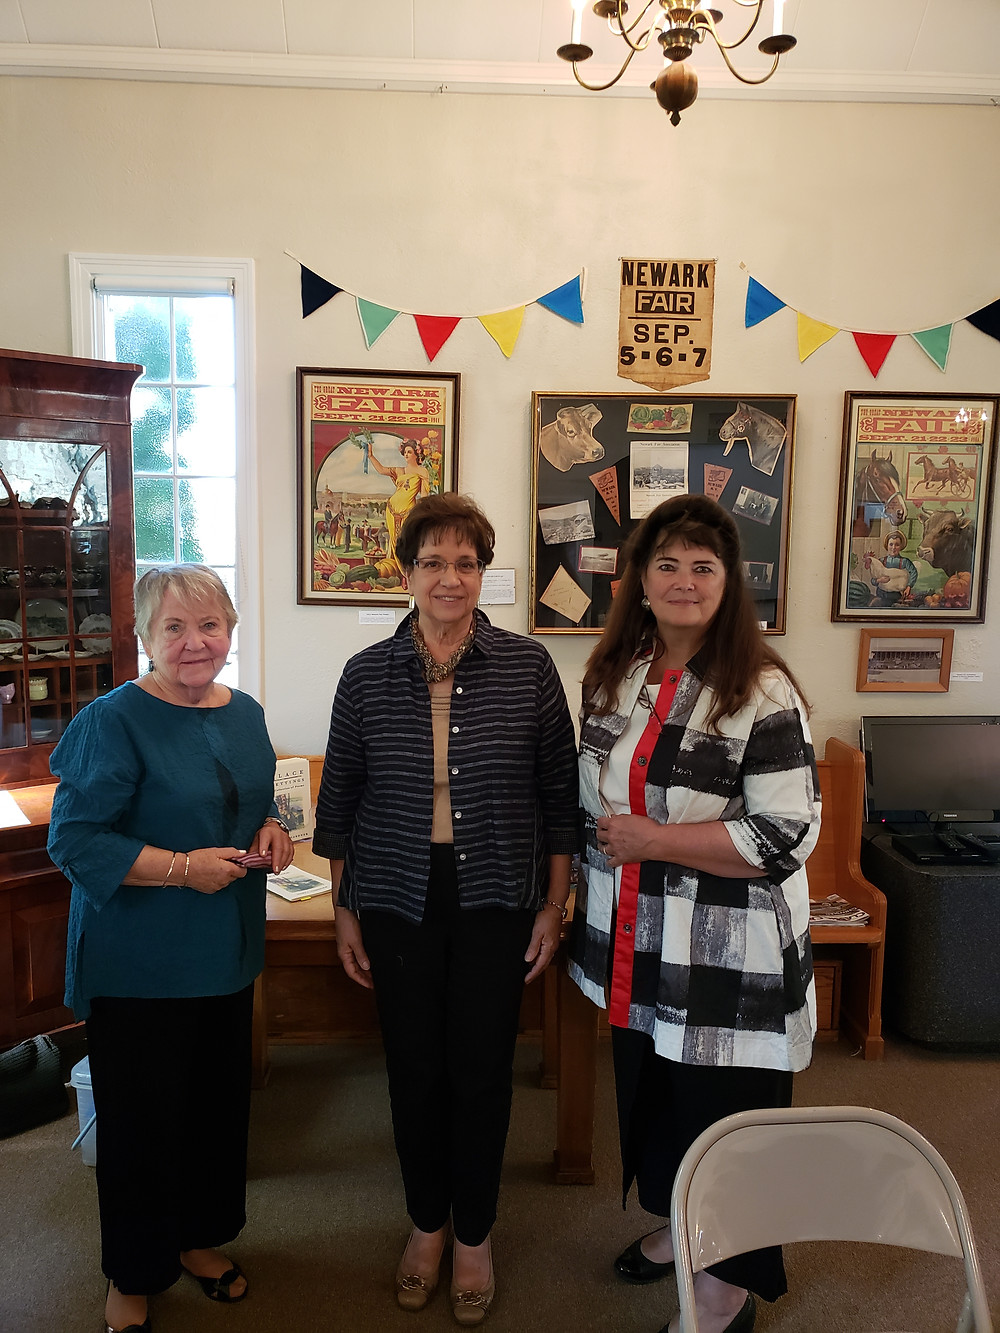 CNY Branch past-presidents Mary Garnder (left), Janet Fagal (center) and current president Nancy Dafoe (right) read poetry in tribute to the late Pearl Newton Rook, a former CNY Branch President.